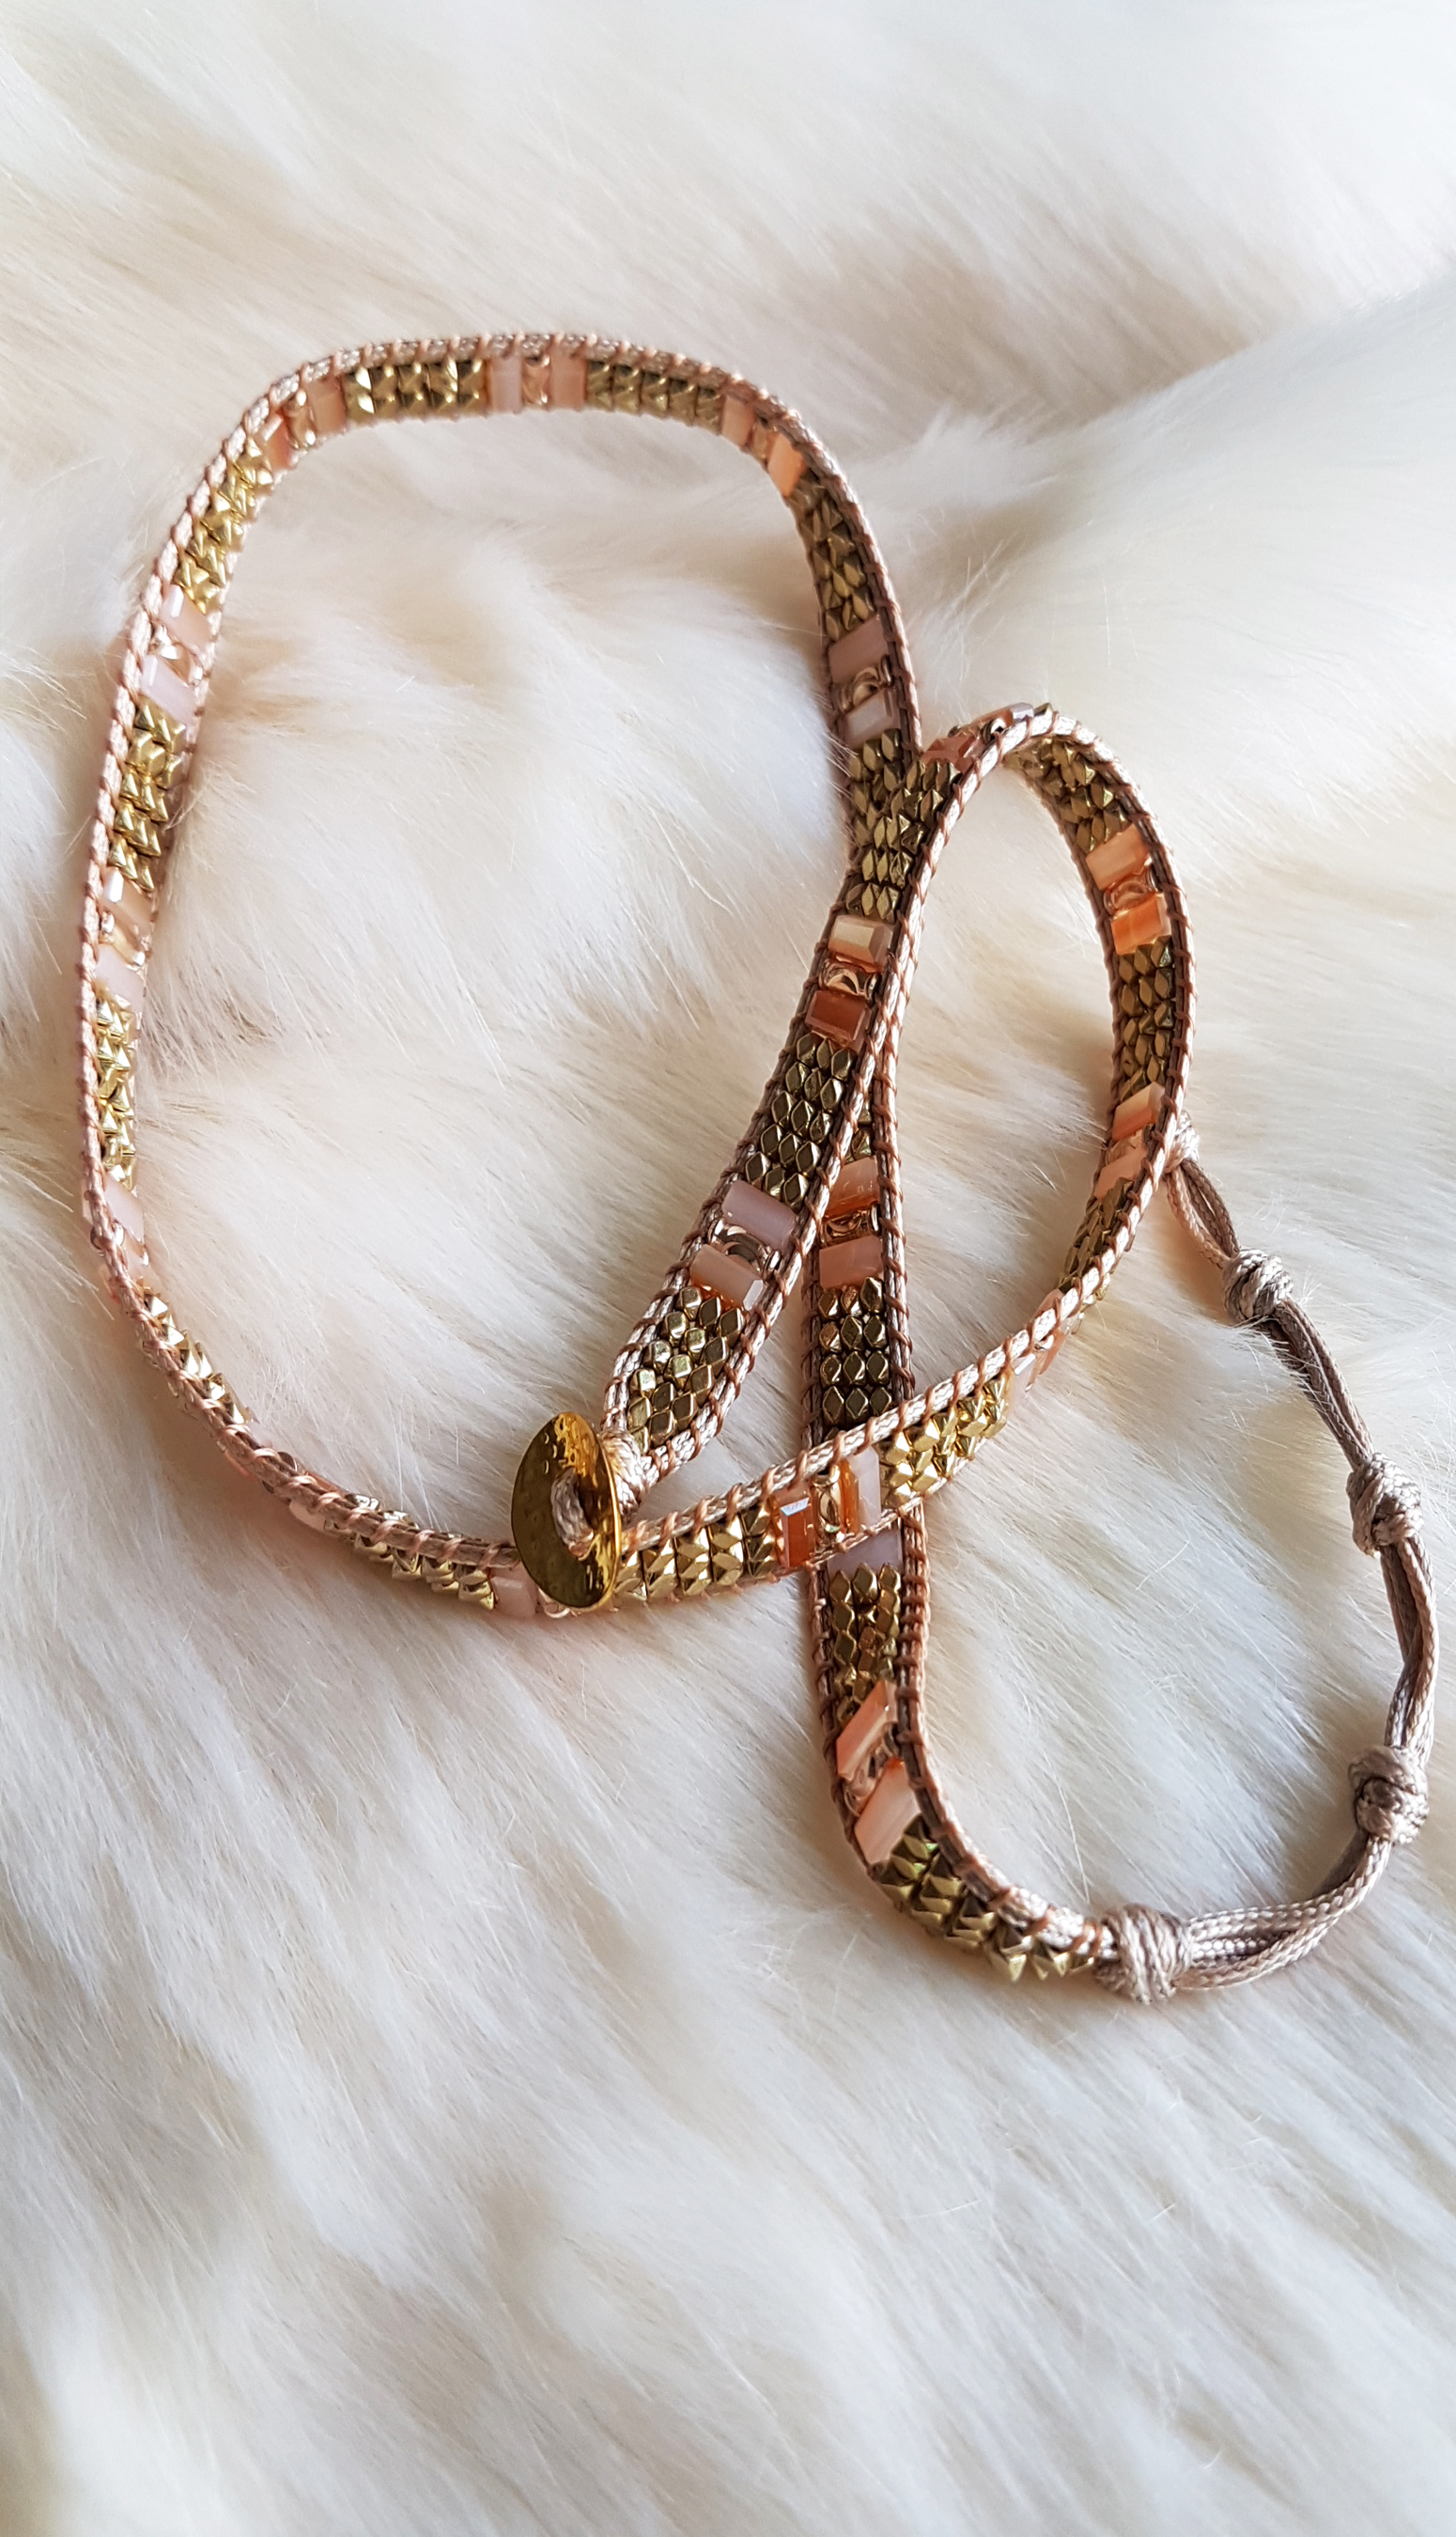 necklace-with-golden-and-faceted-beads_3